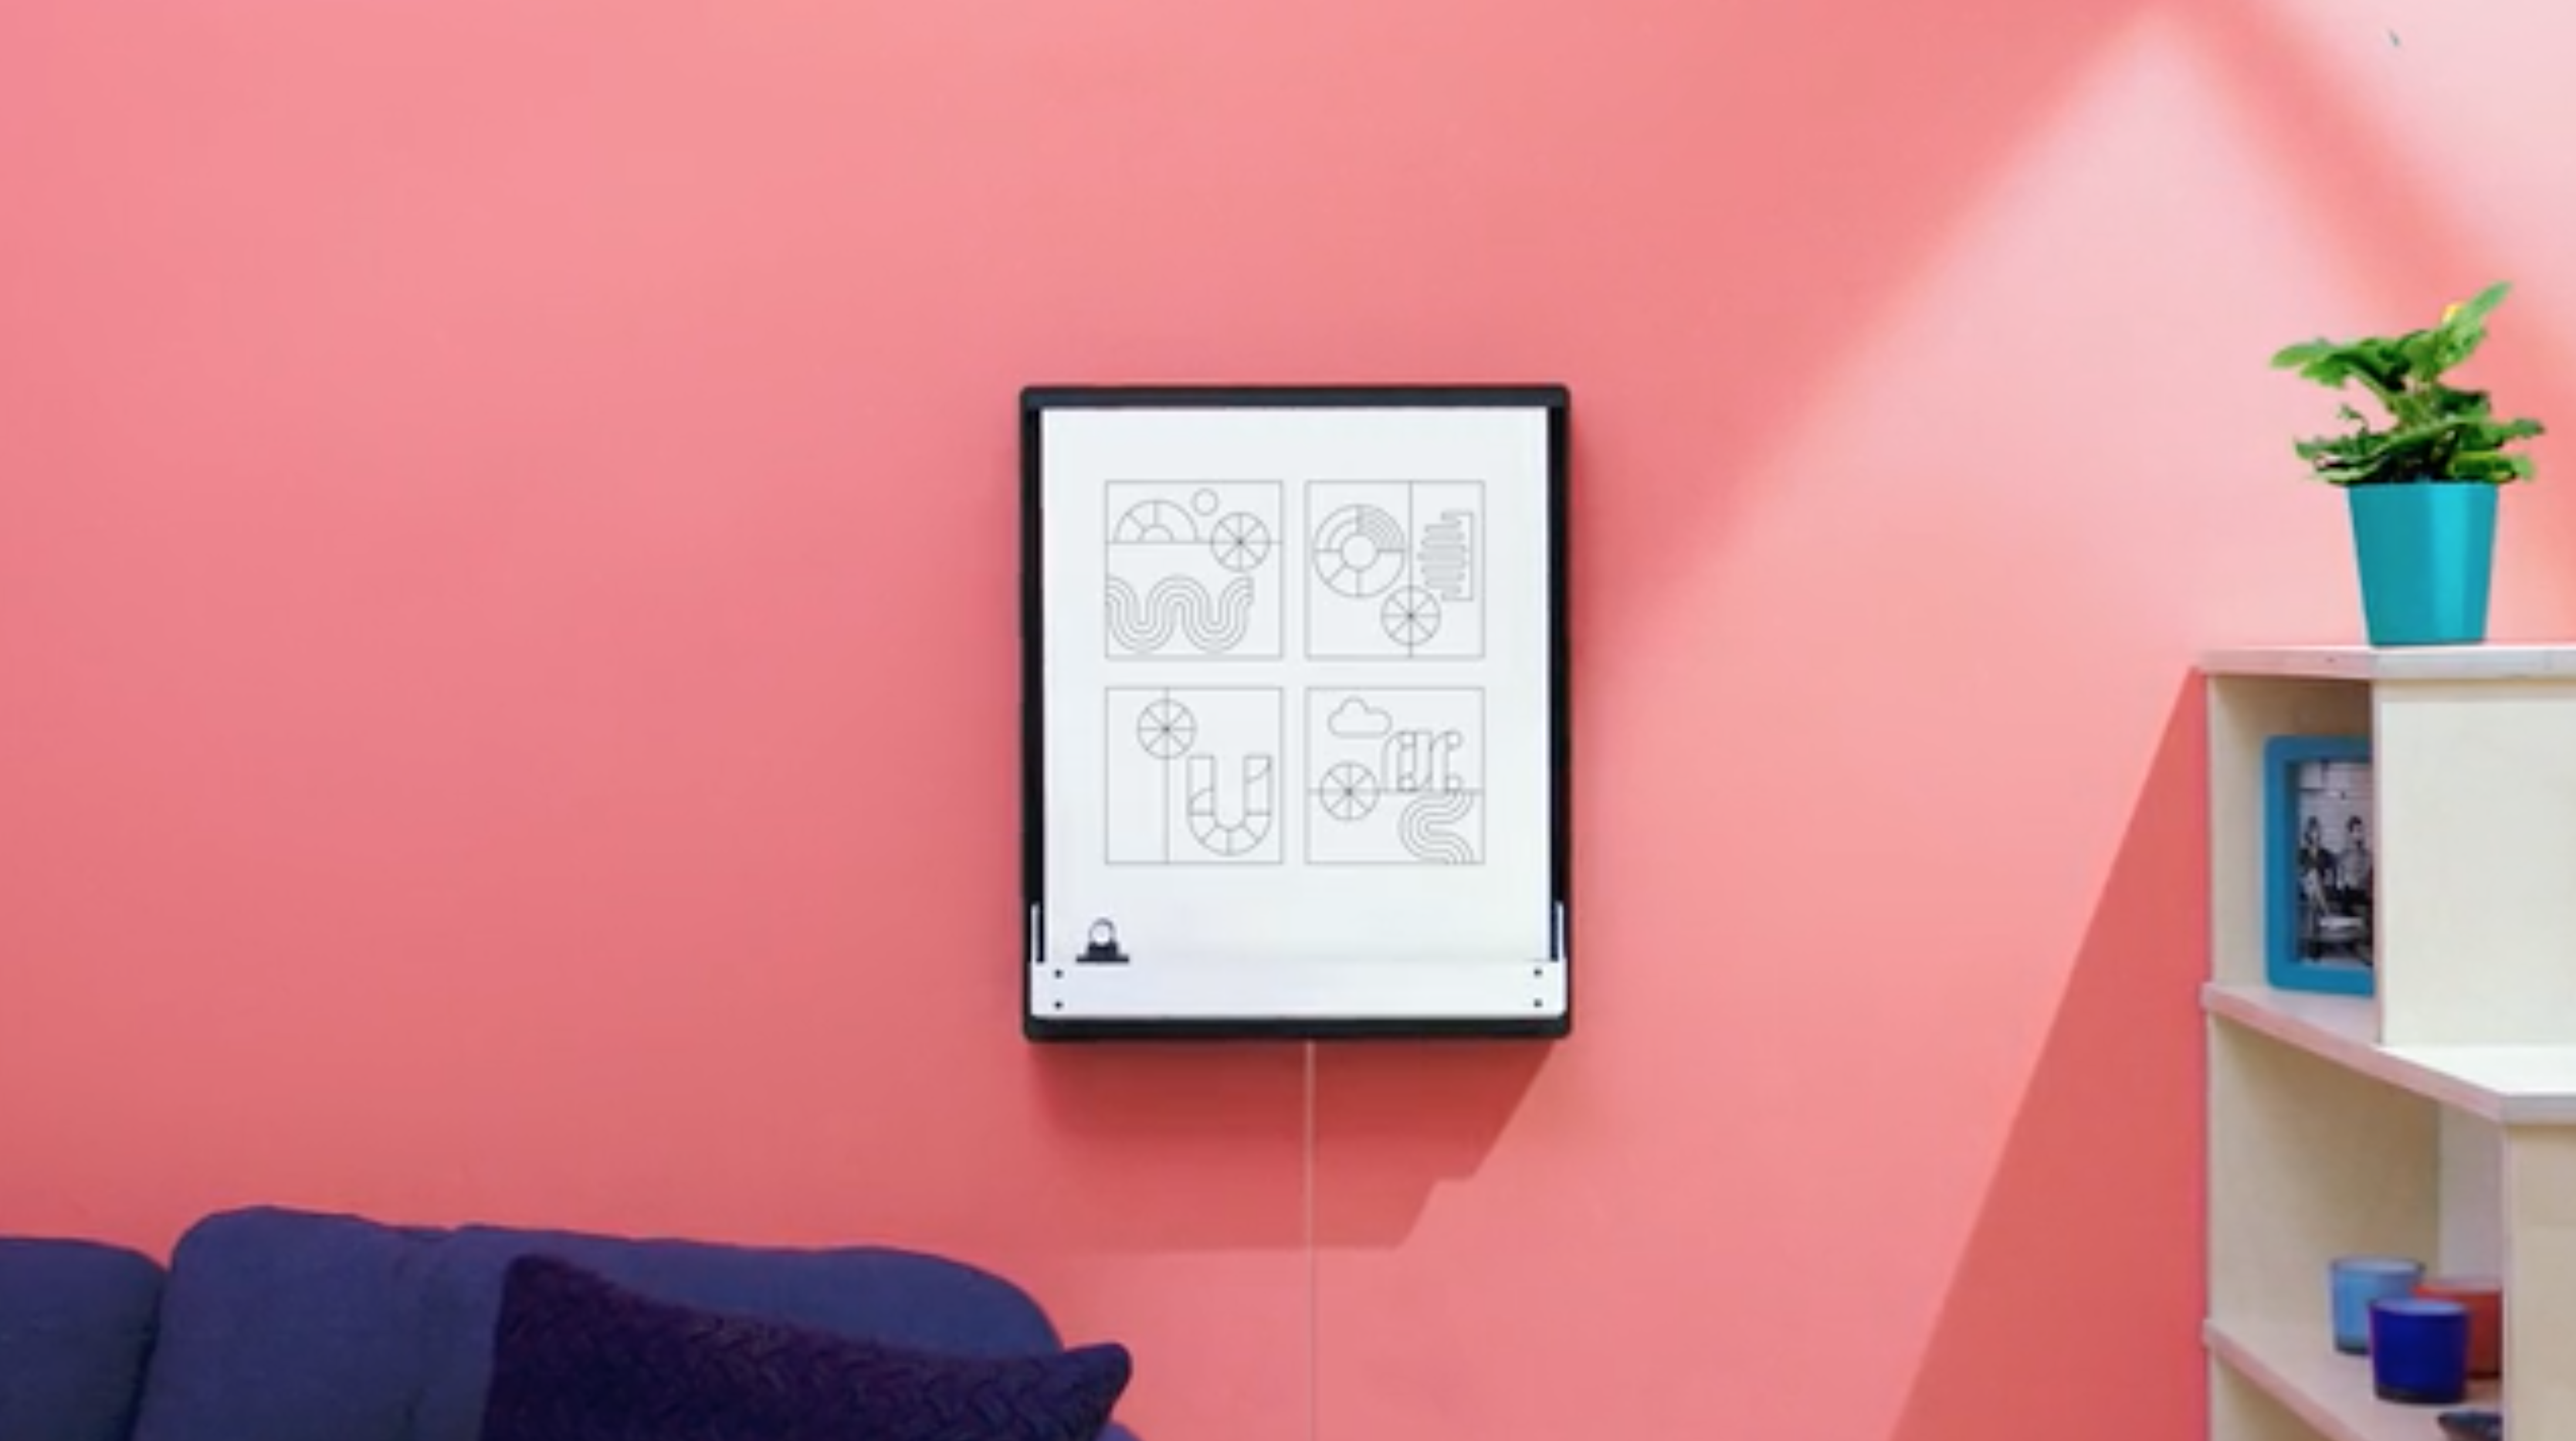 Joto is a robotic whiteboard that can draw your tweets and Slack messages in real life